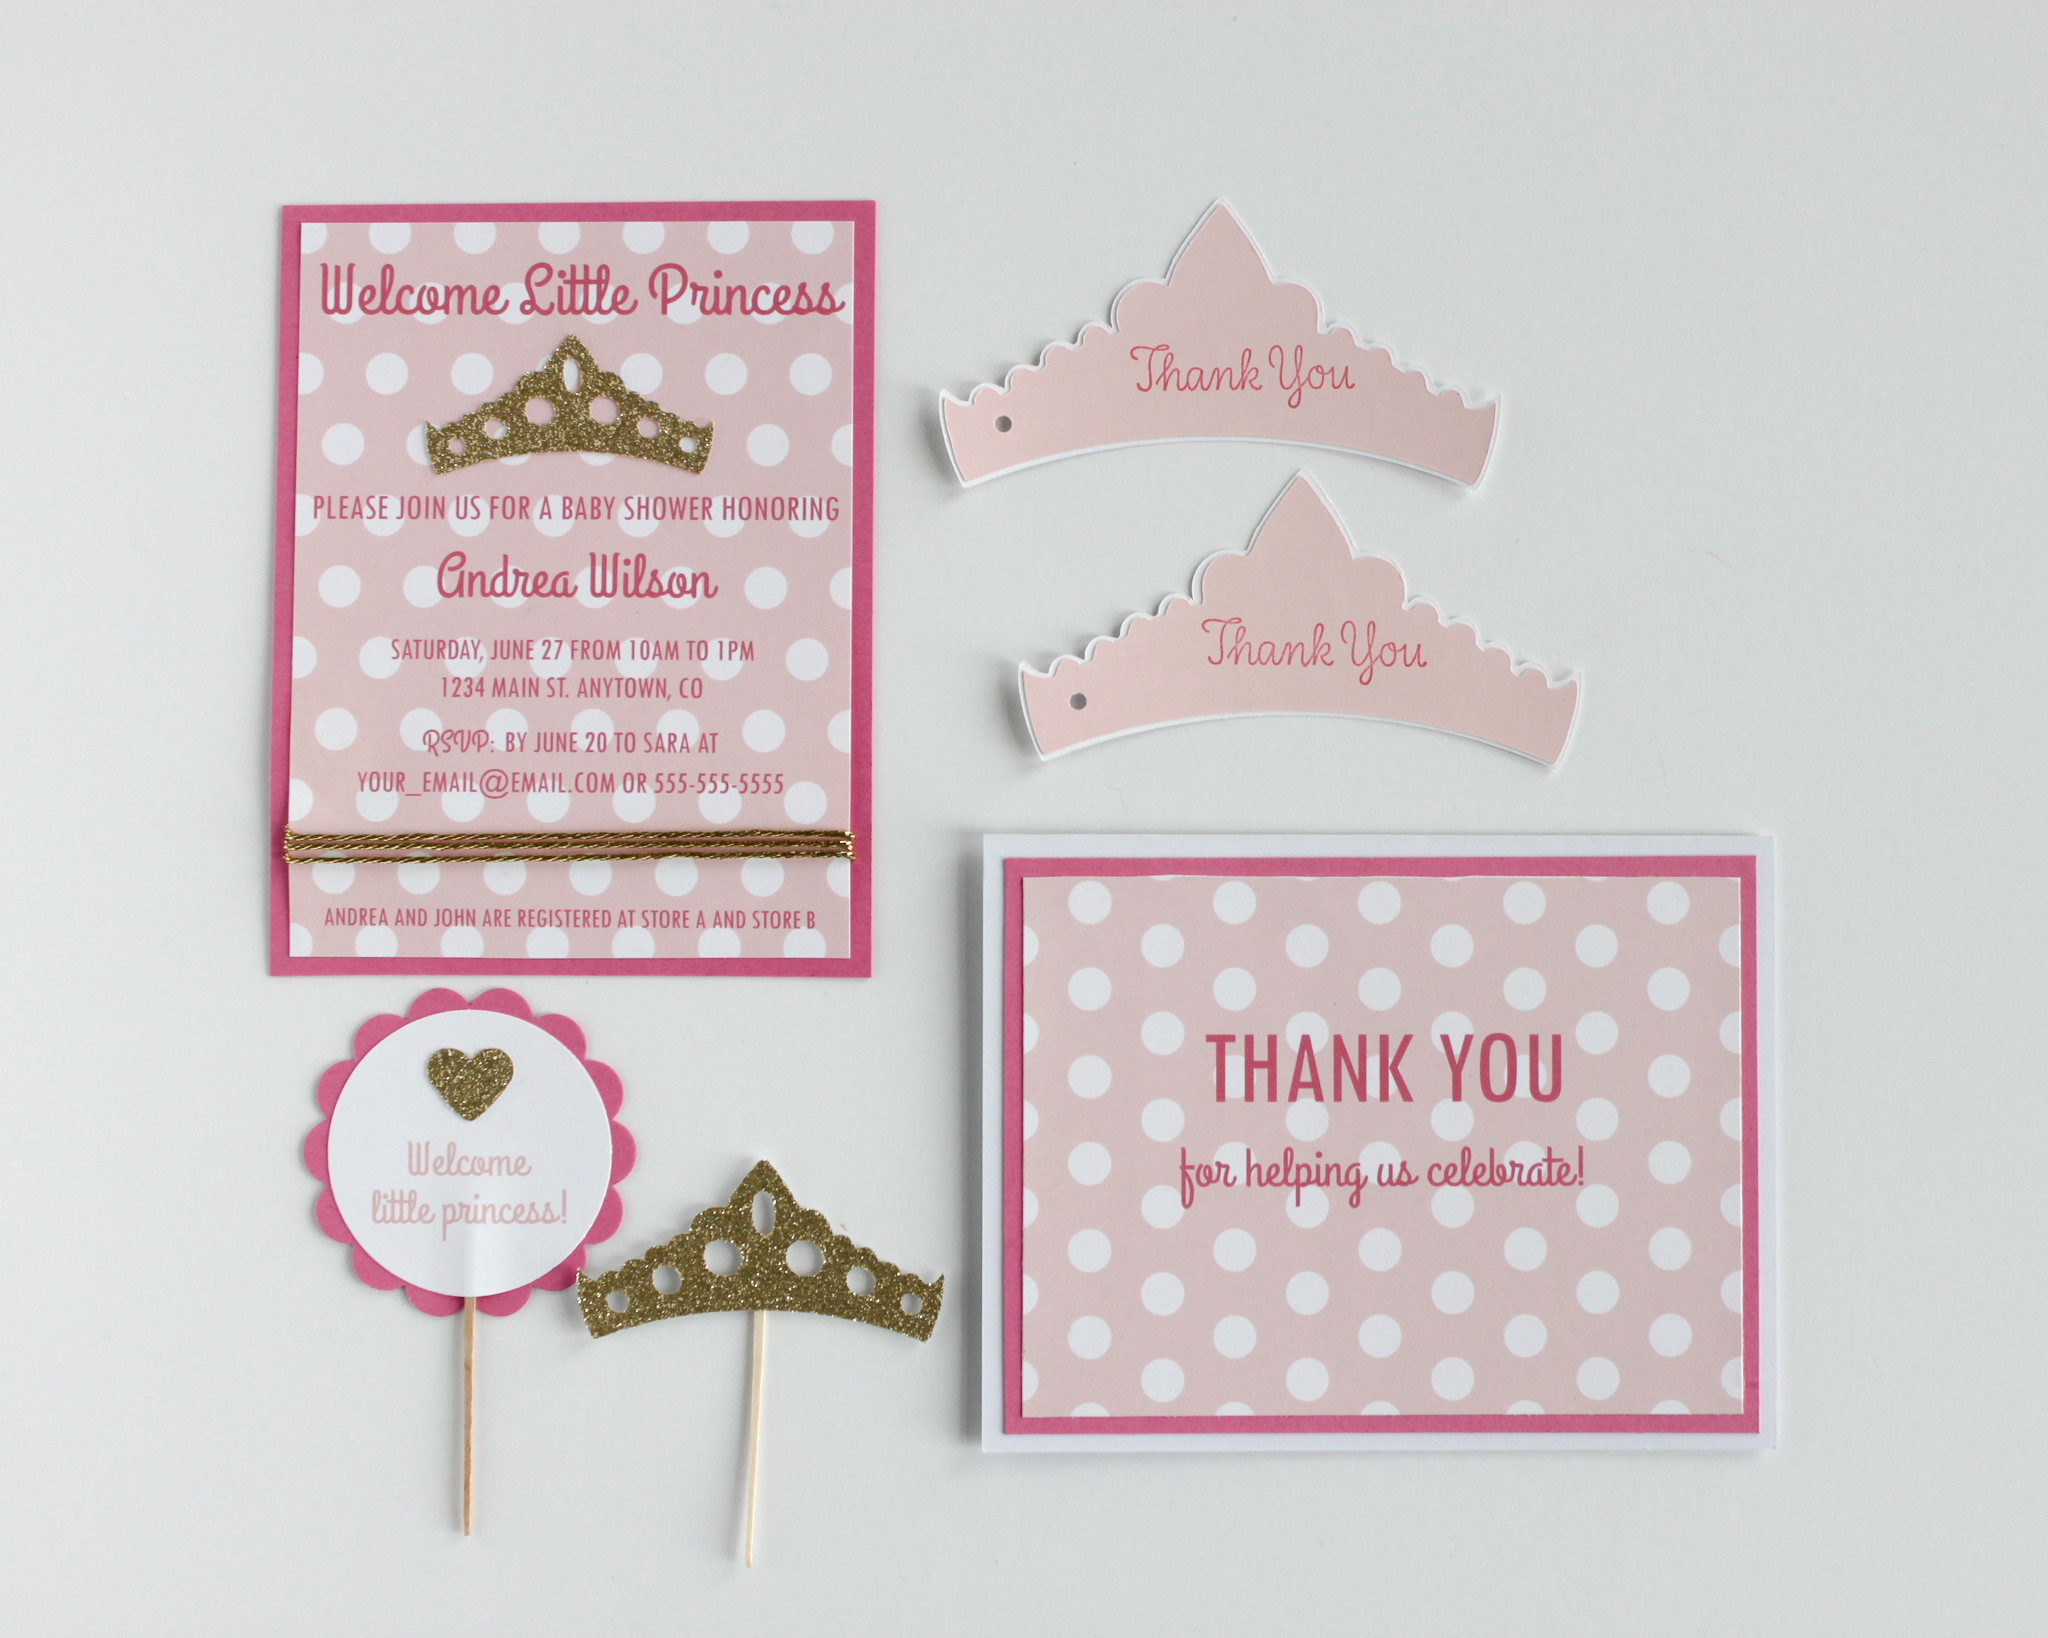 Welcome Little Princess Paper - OhSoFancyParty